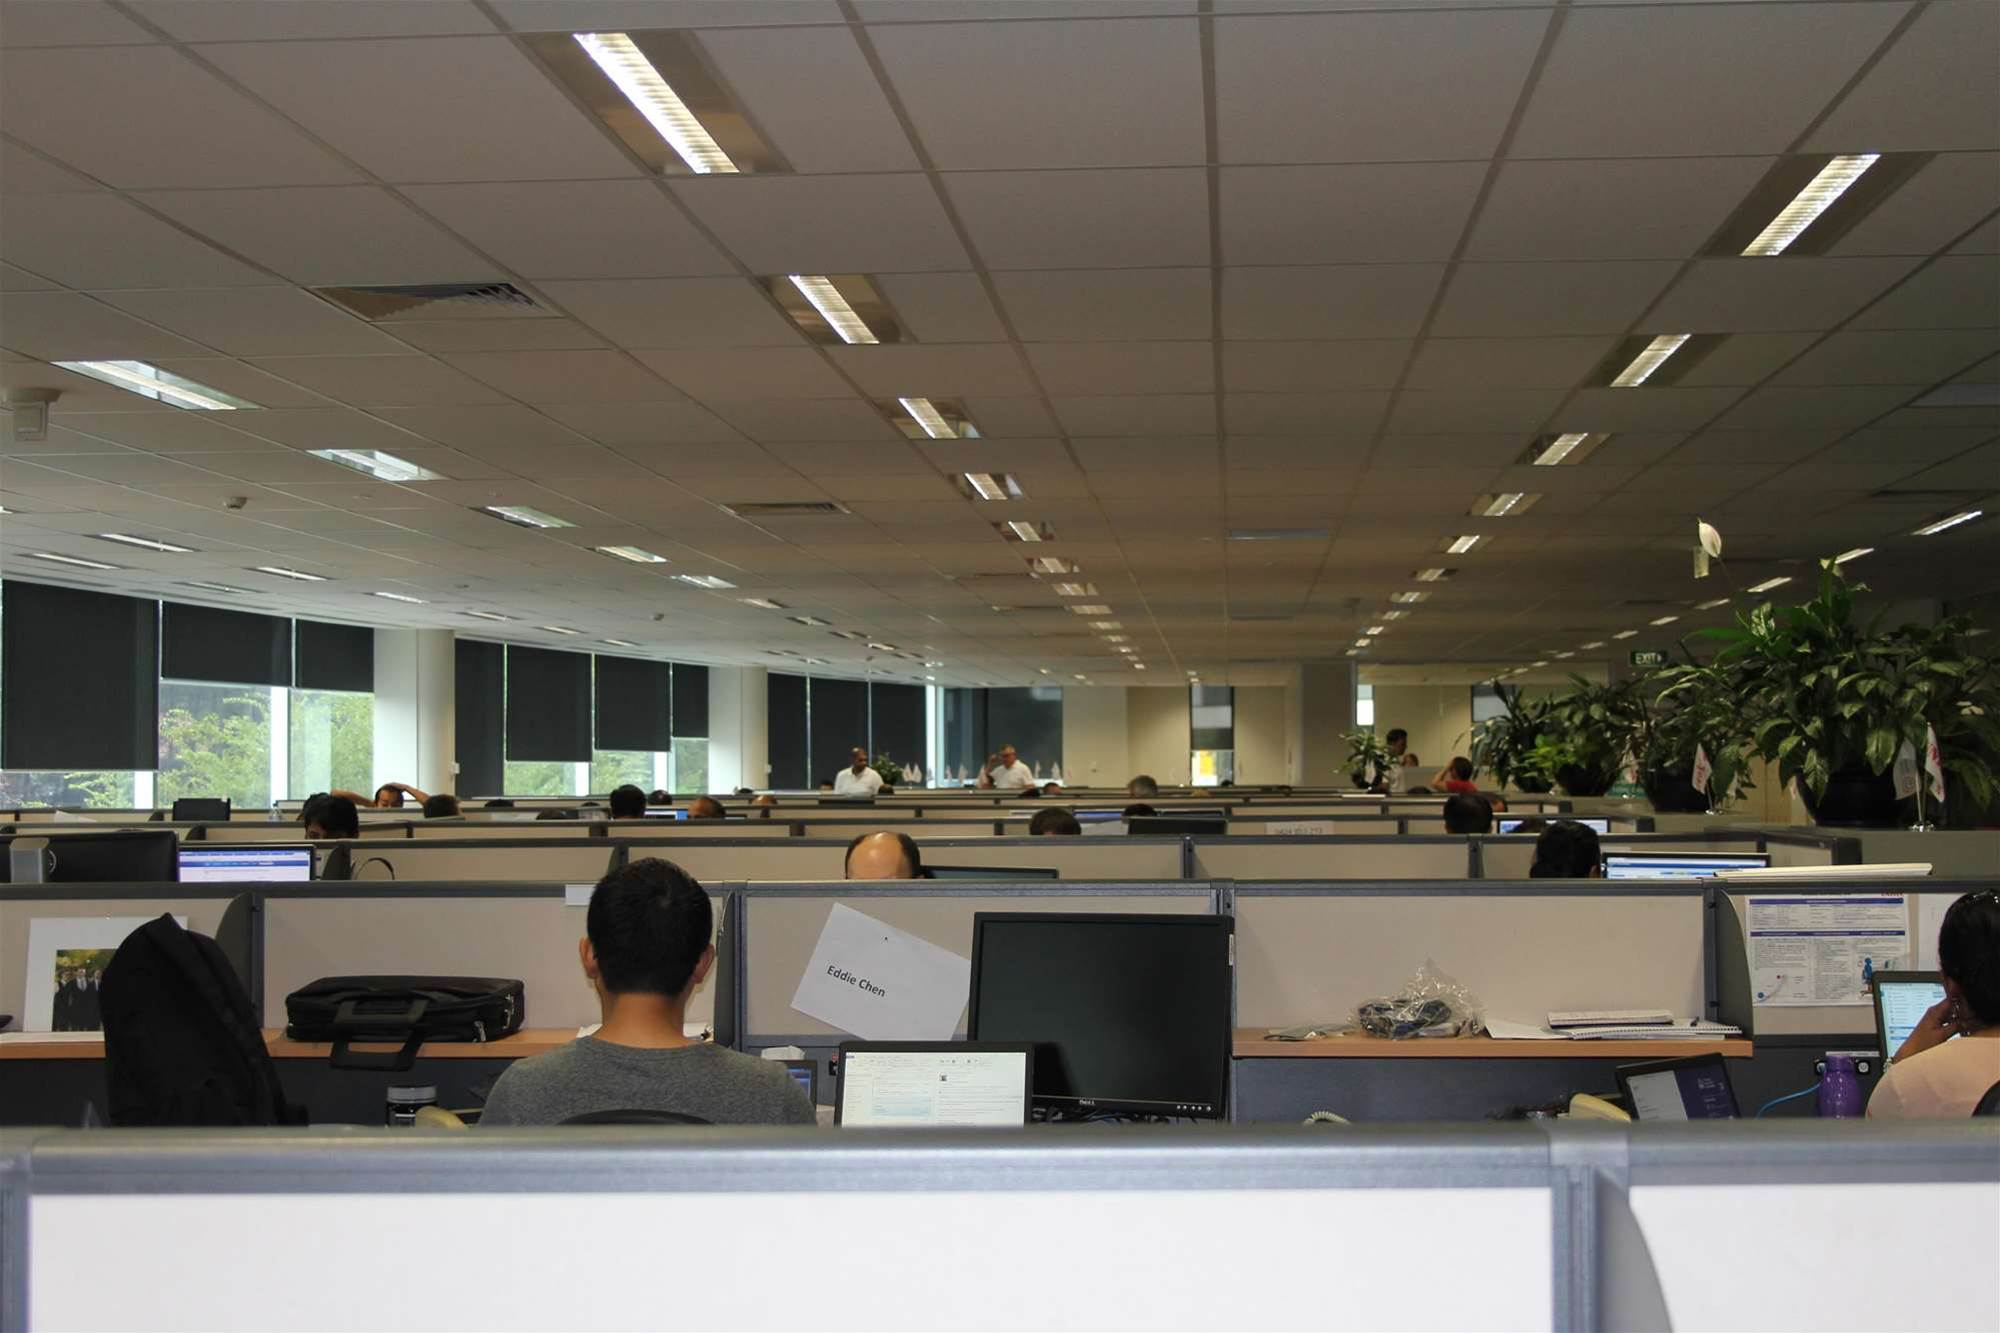 Photos: Inside the NSW govt's outsourced IT support centre